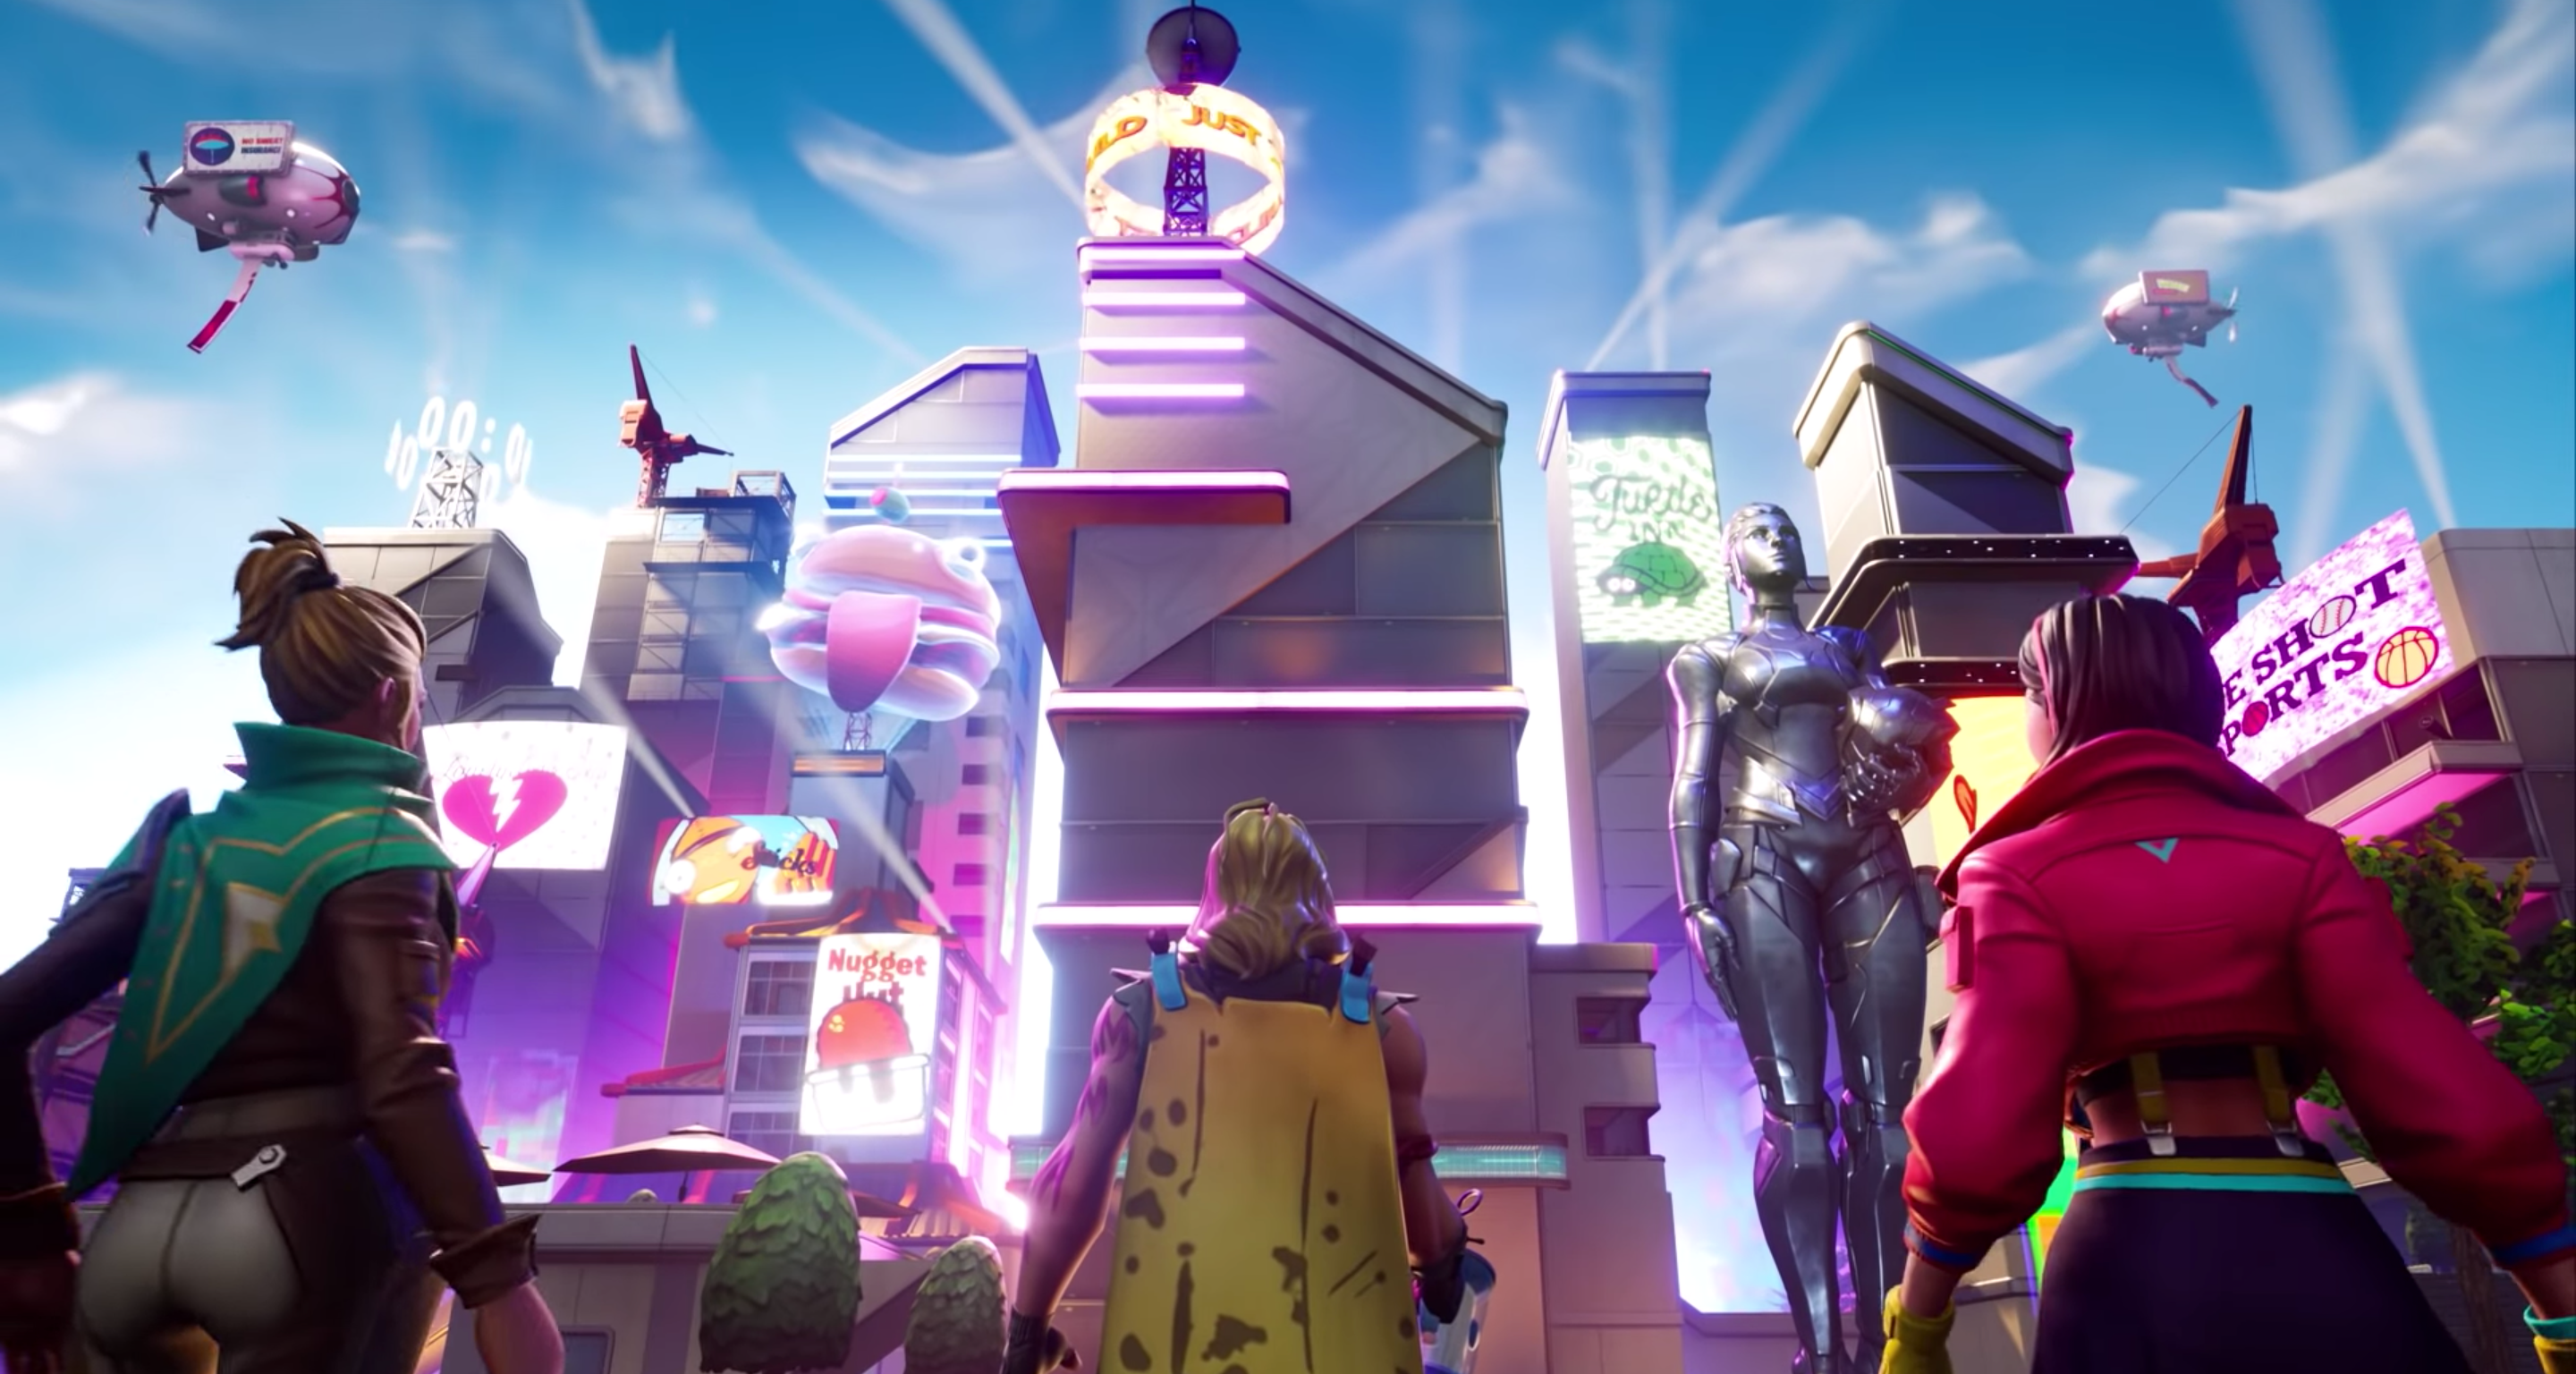 Fortnite Season 9 adds new locations and wind transport, but is